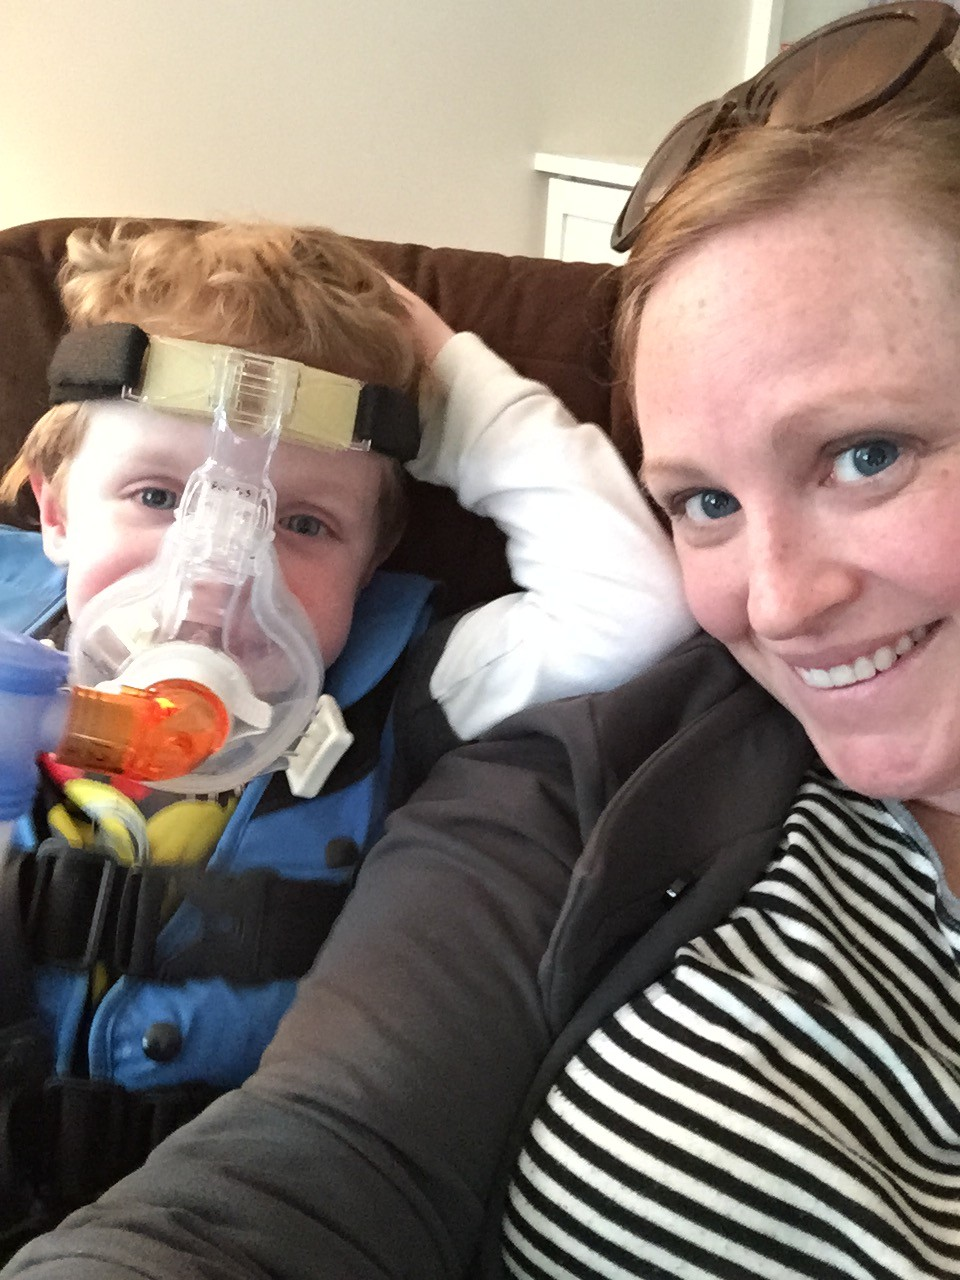 Boy wearing nebulizer mask and his mom